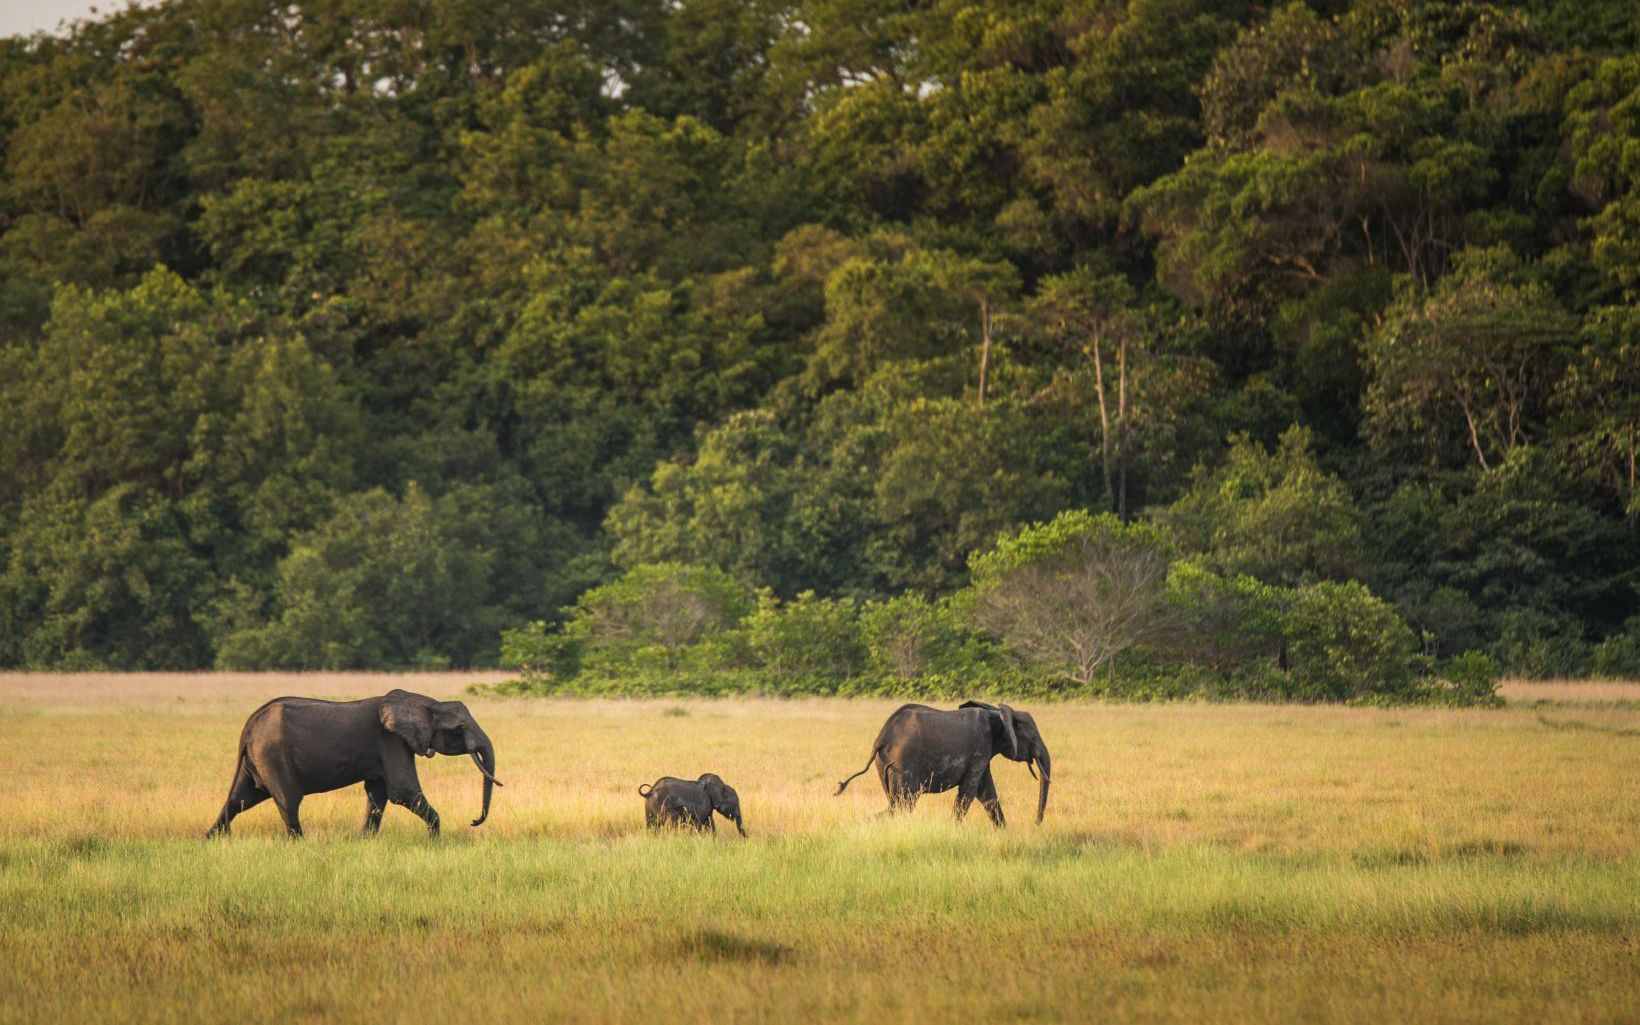 Forest elephants sighting in Loango National Park.